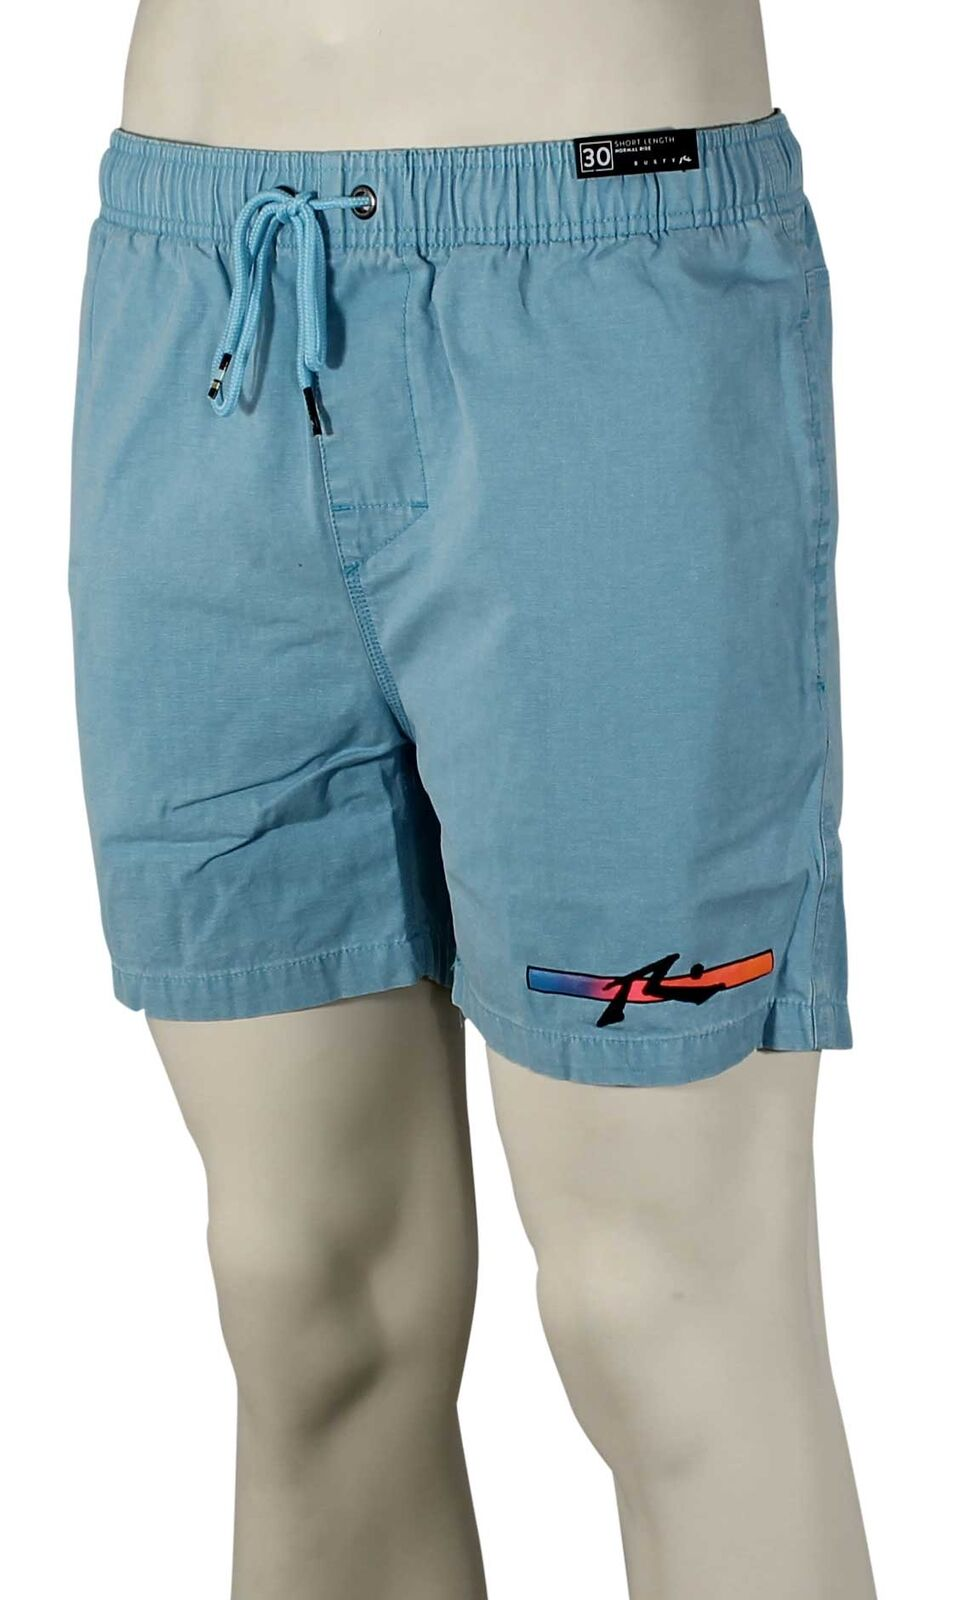 Rusty Barred Volley Shorts - Maui bluee - New